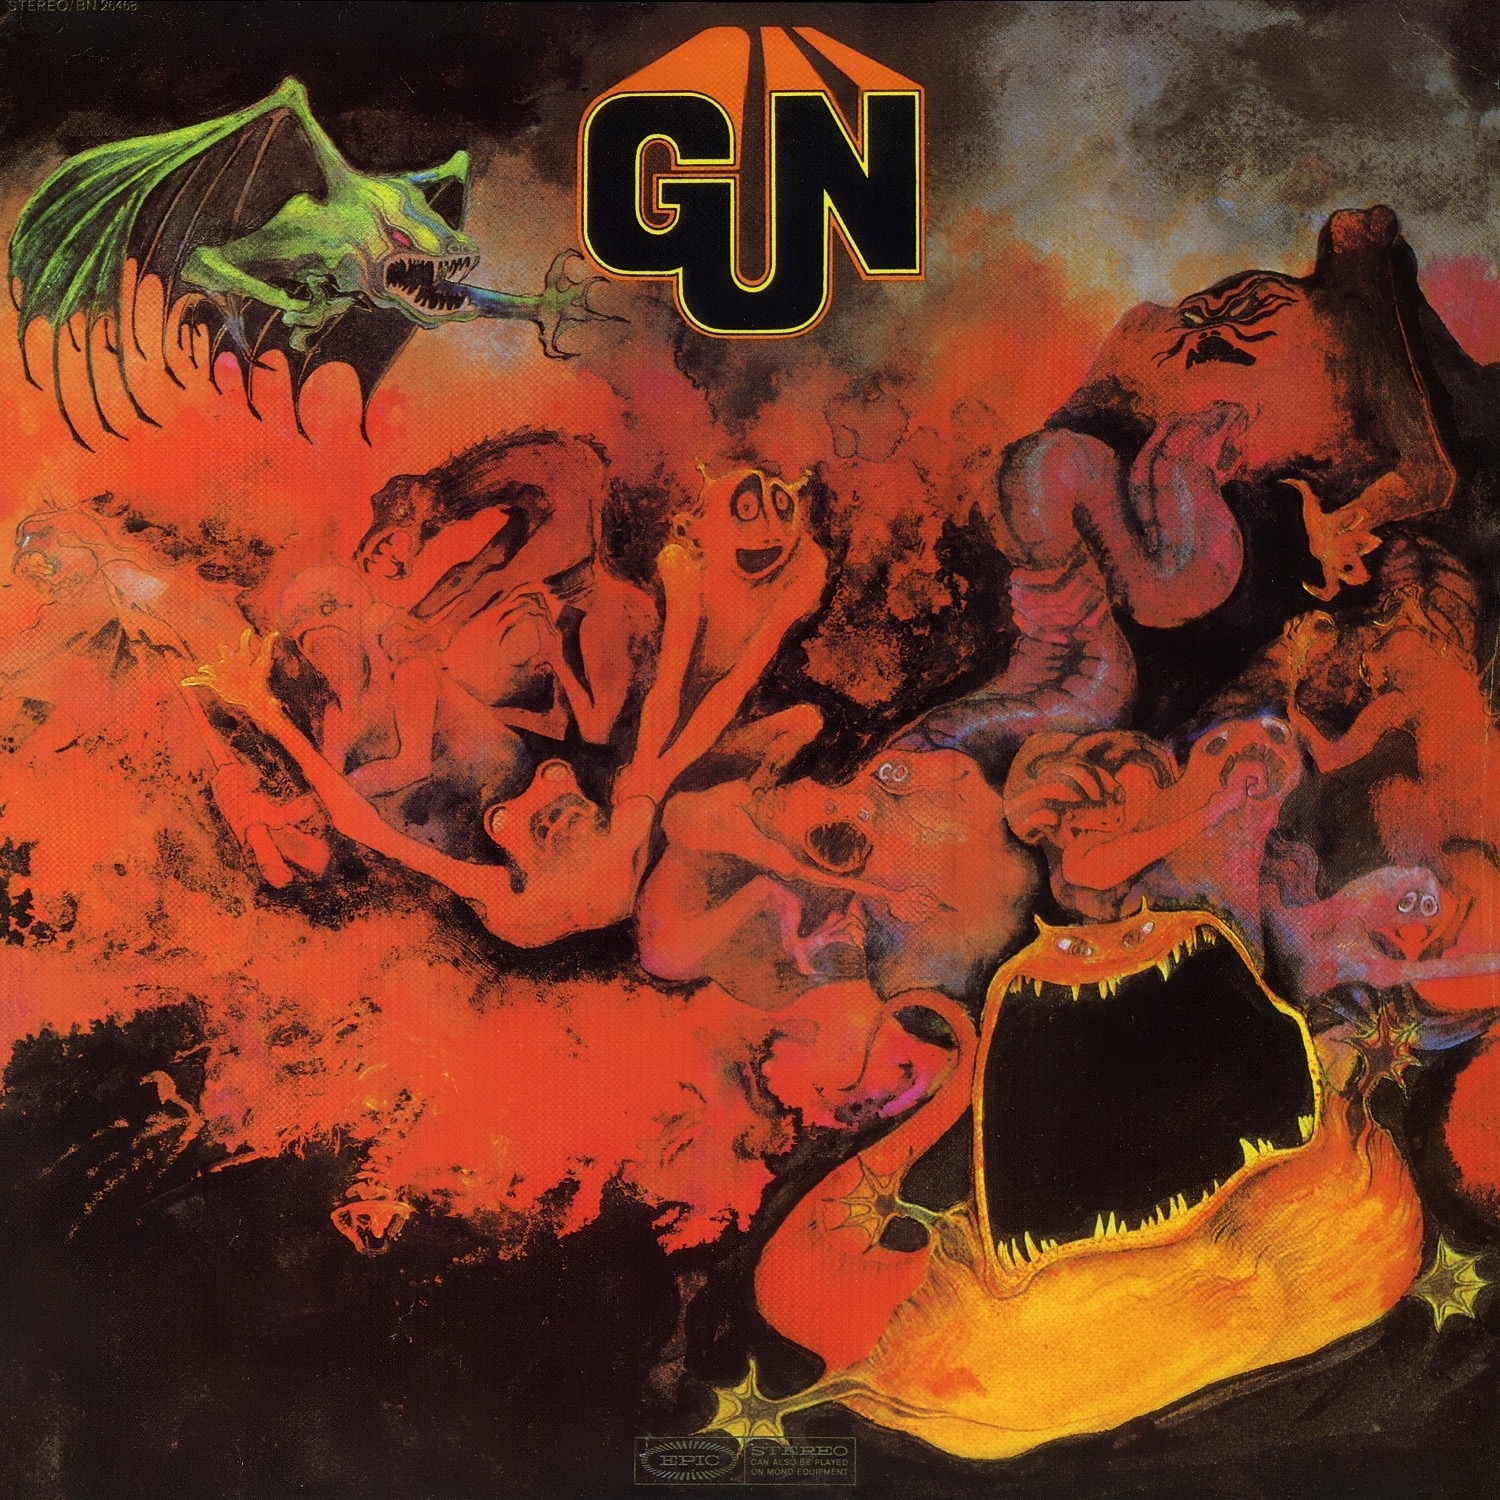 10 Ripping Roger Dean Album Covers